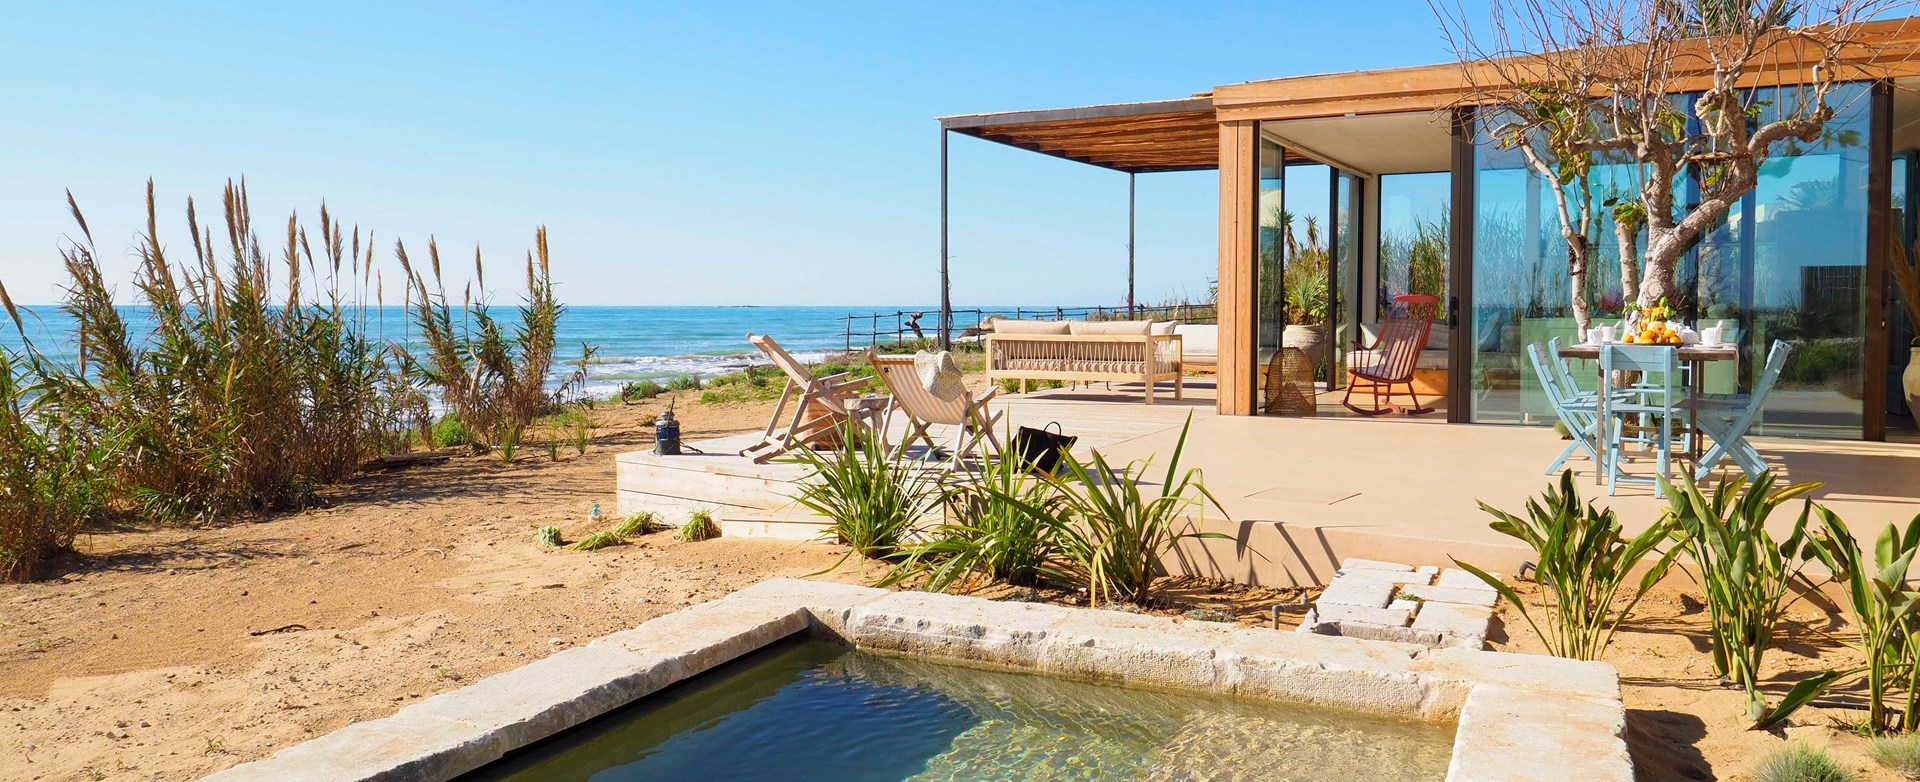 chic-2-bed-beach-house-sicily